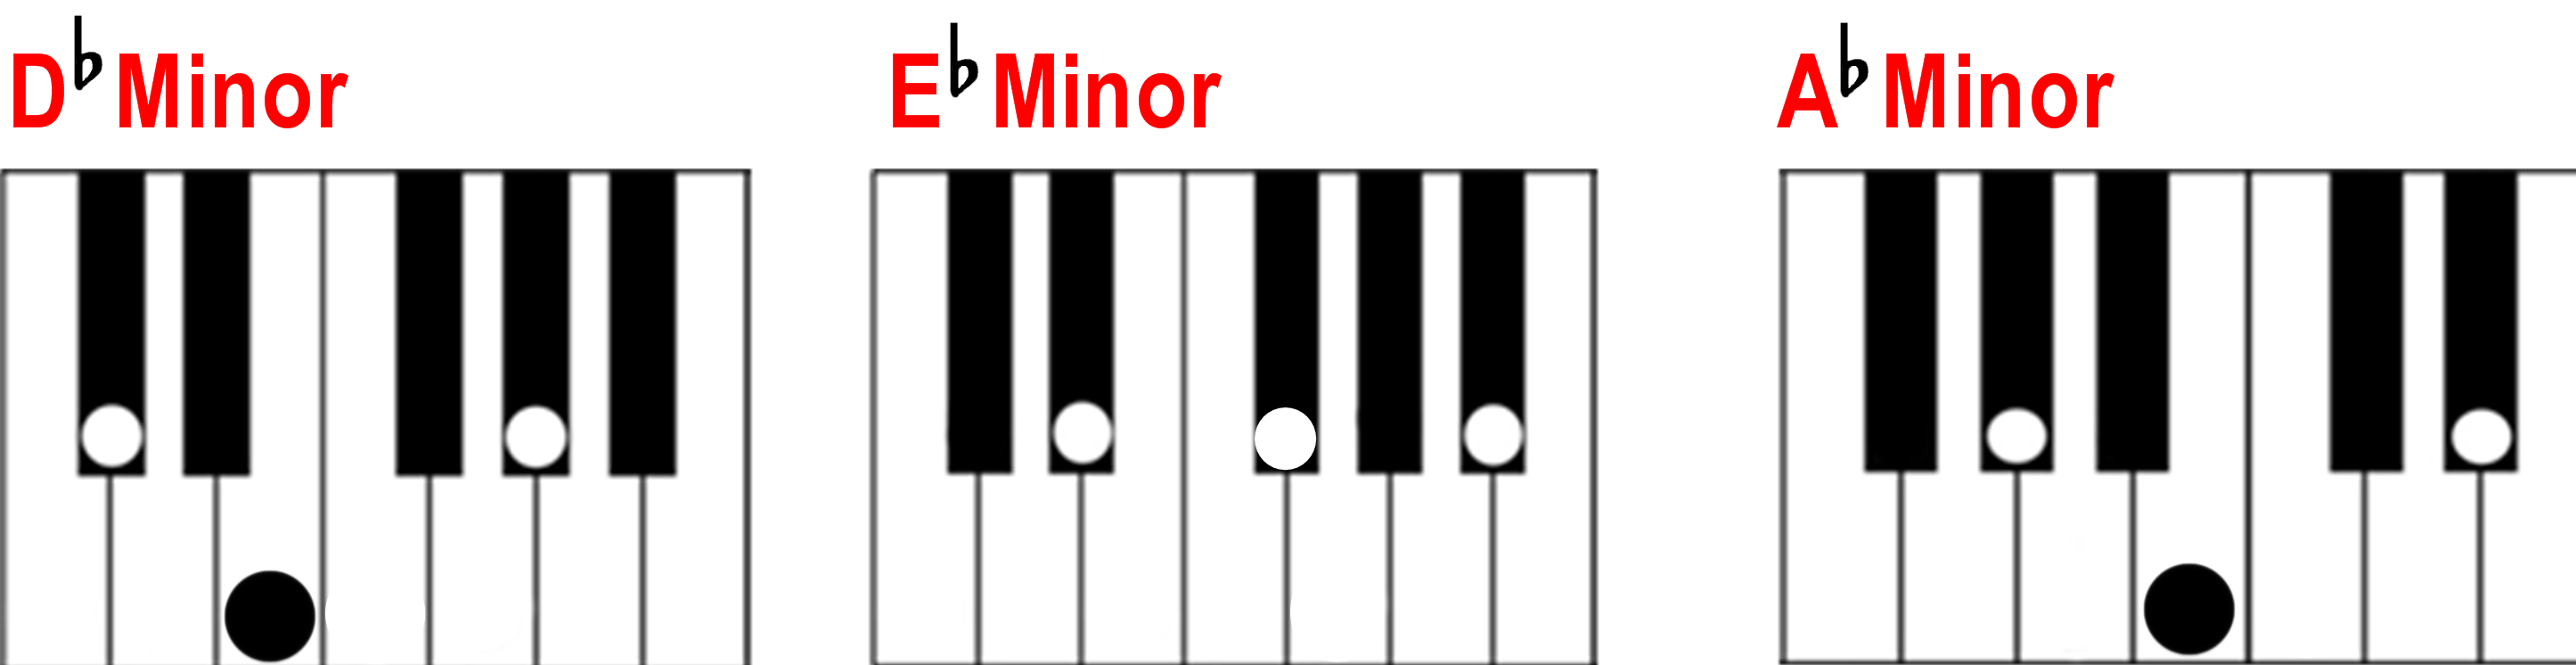 Finding a minor chord on the piano d flat minor e flat minor and a flat minor chords on the piano hexwebz Gallery